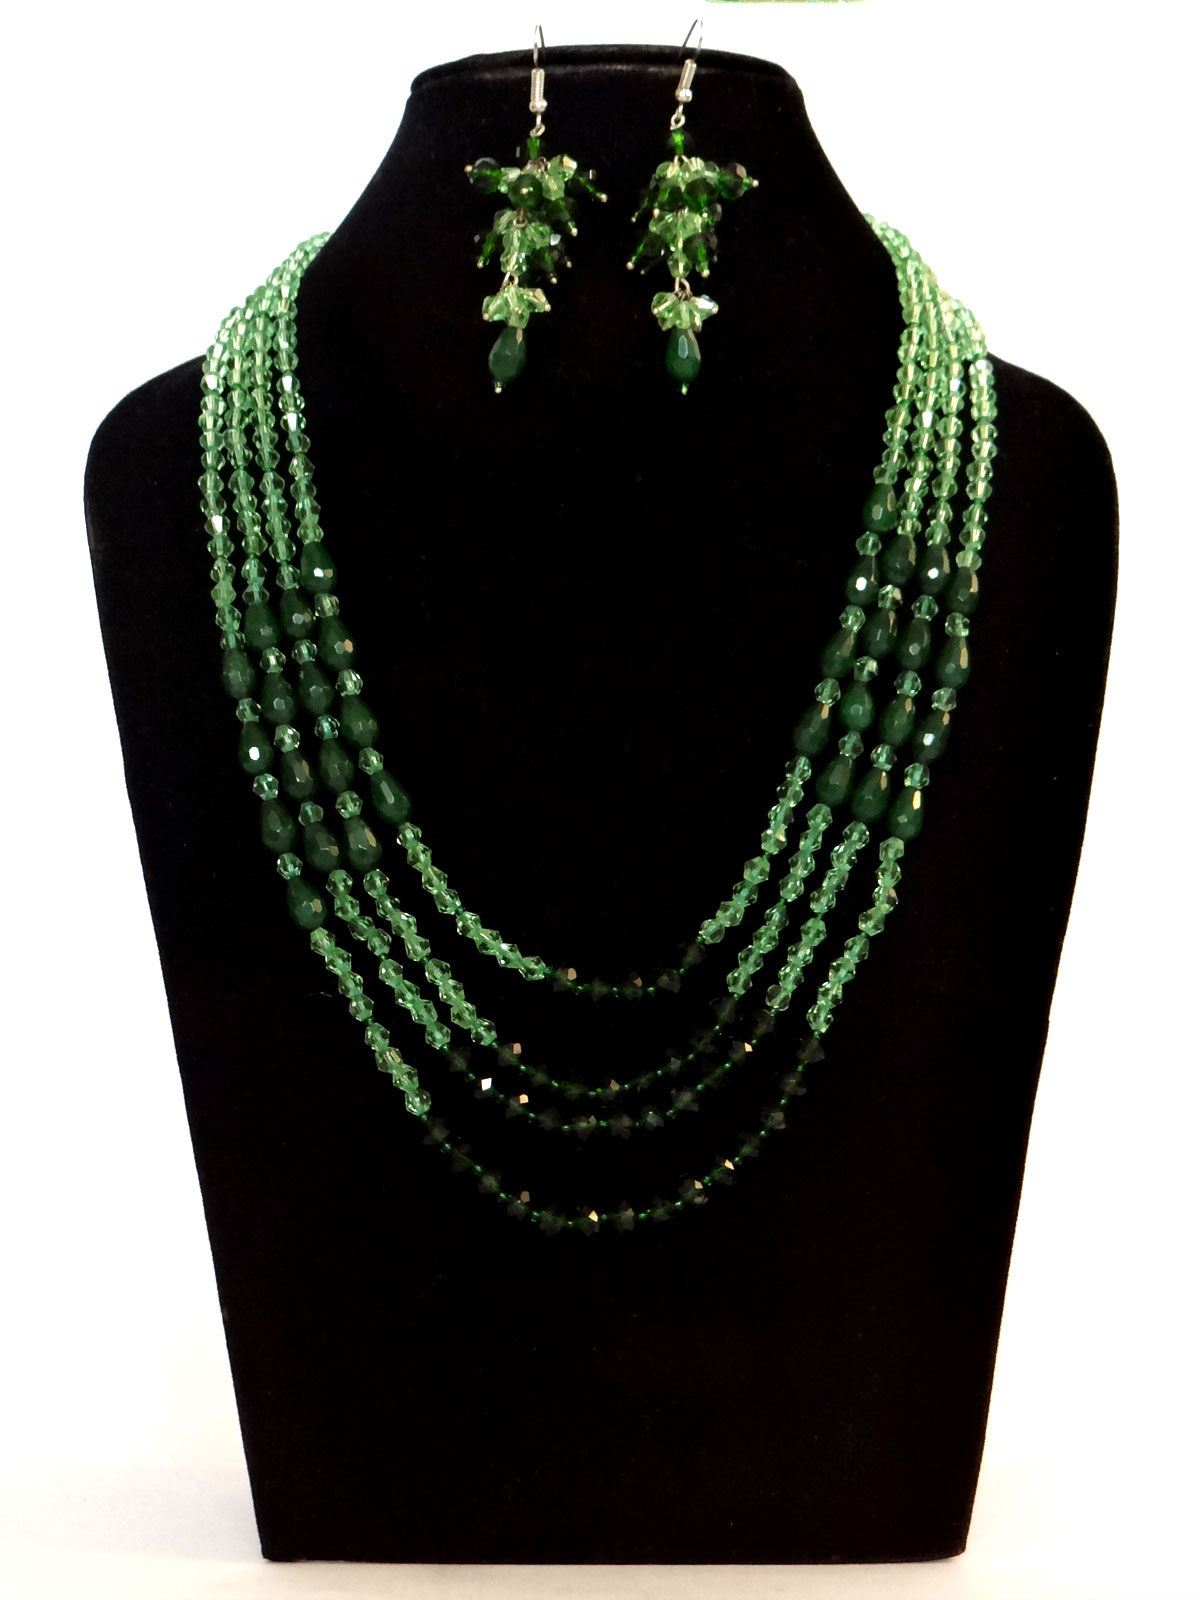 Alankriti light and dark green crystal with onyx drops